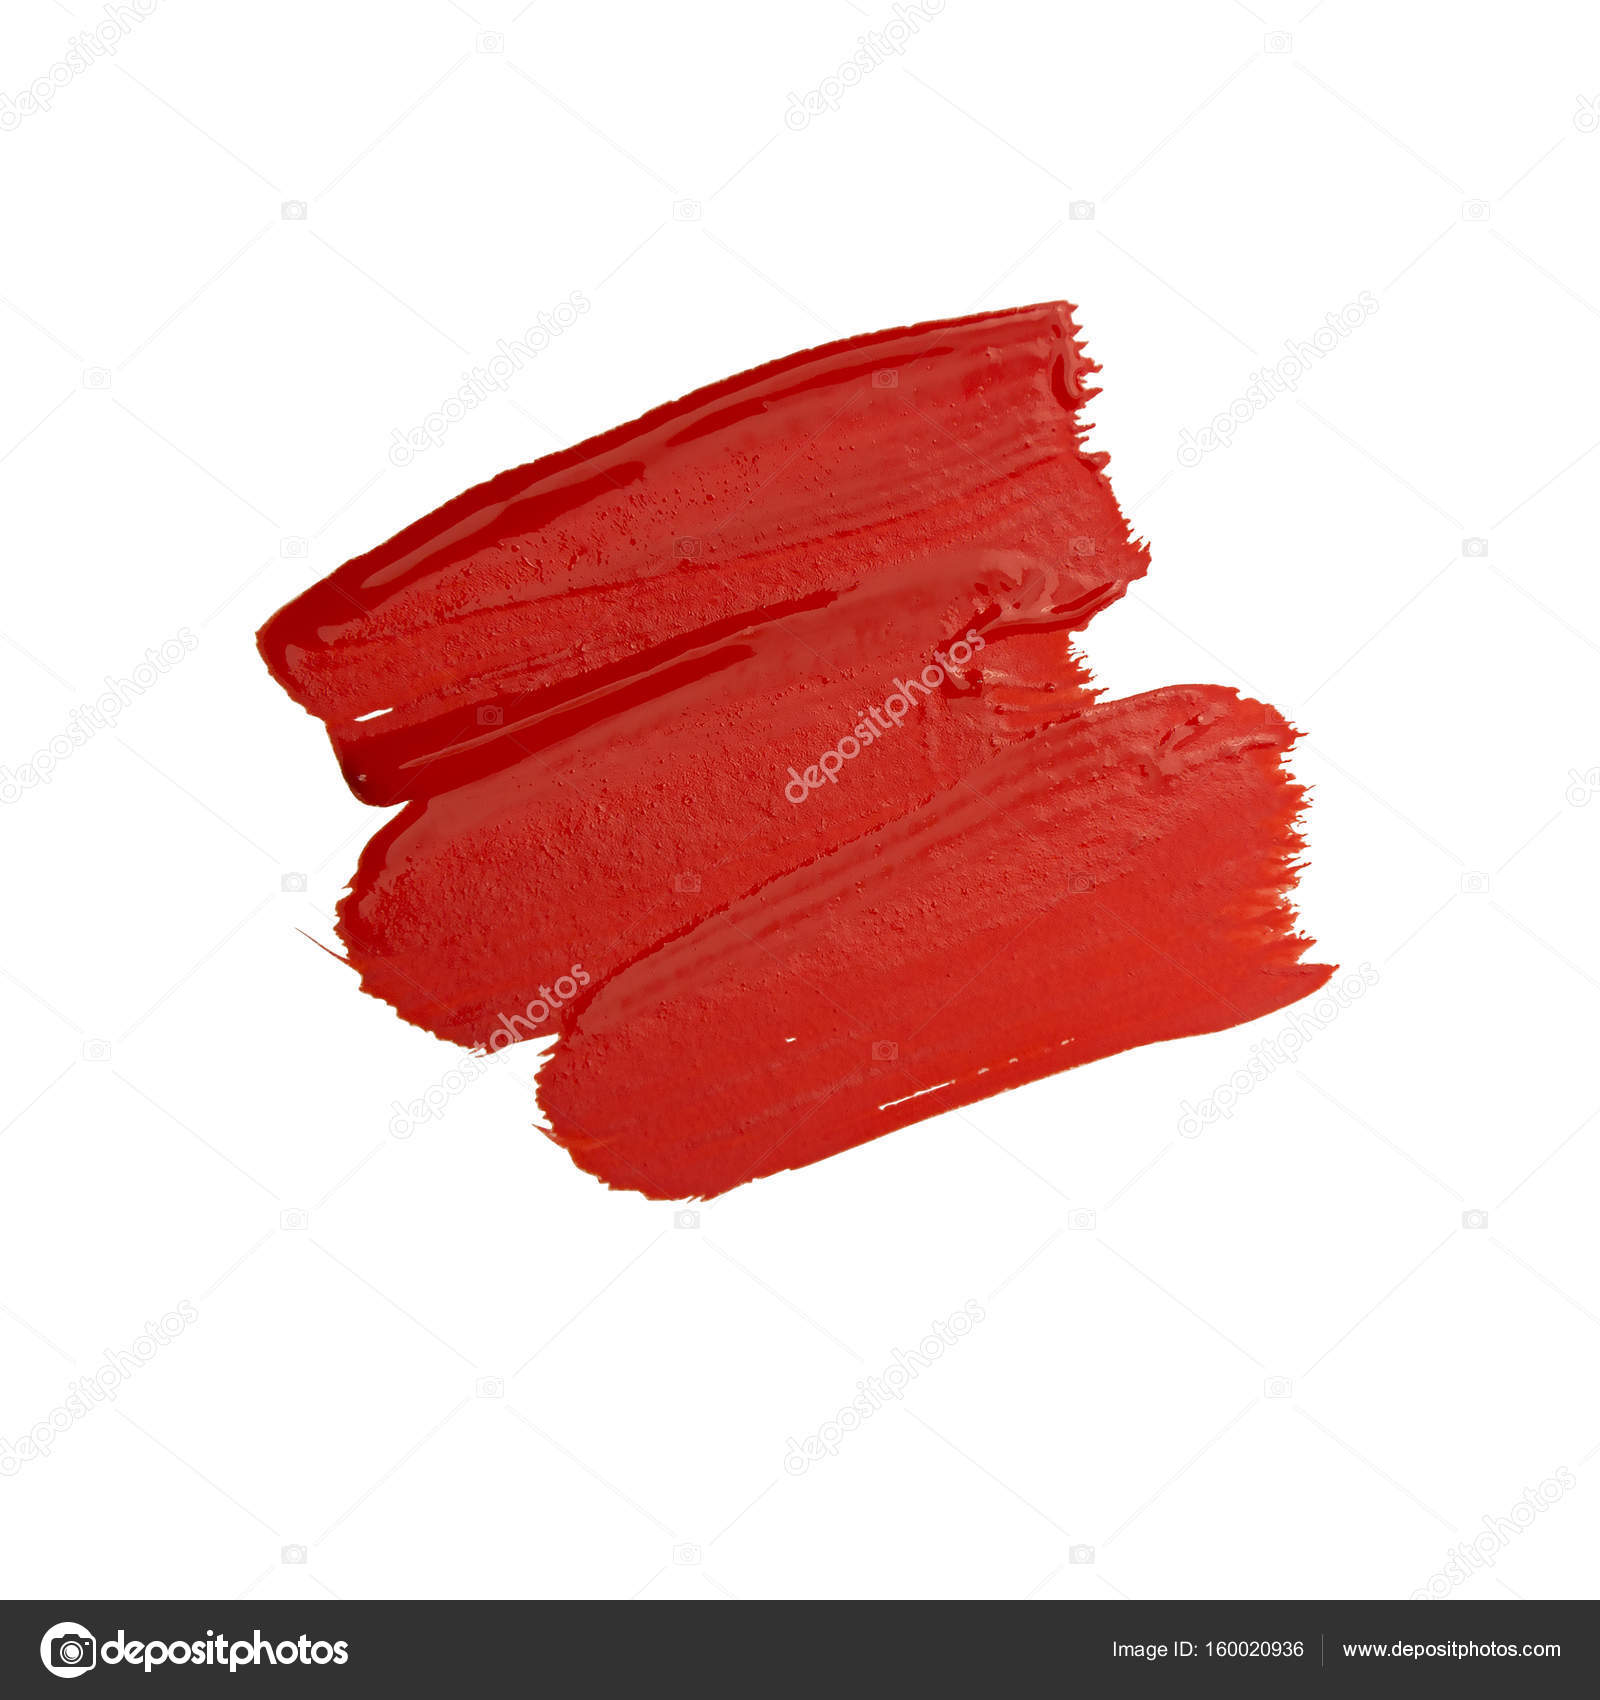 Red brush: application, unique properties